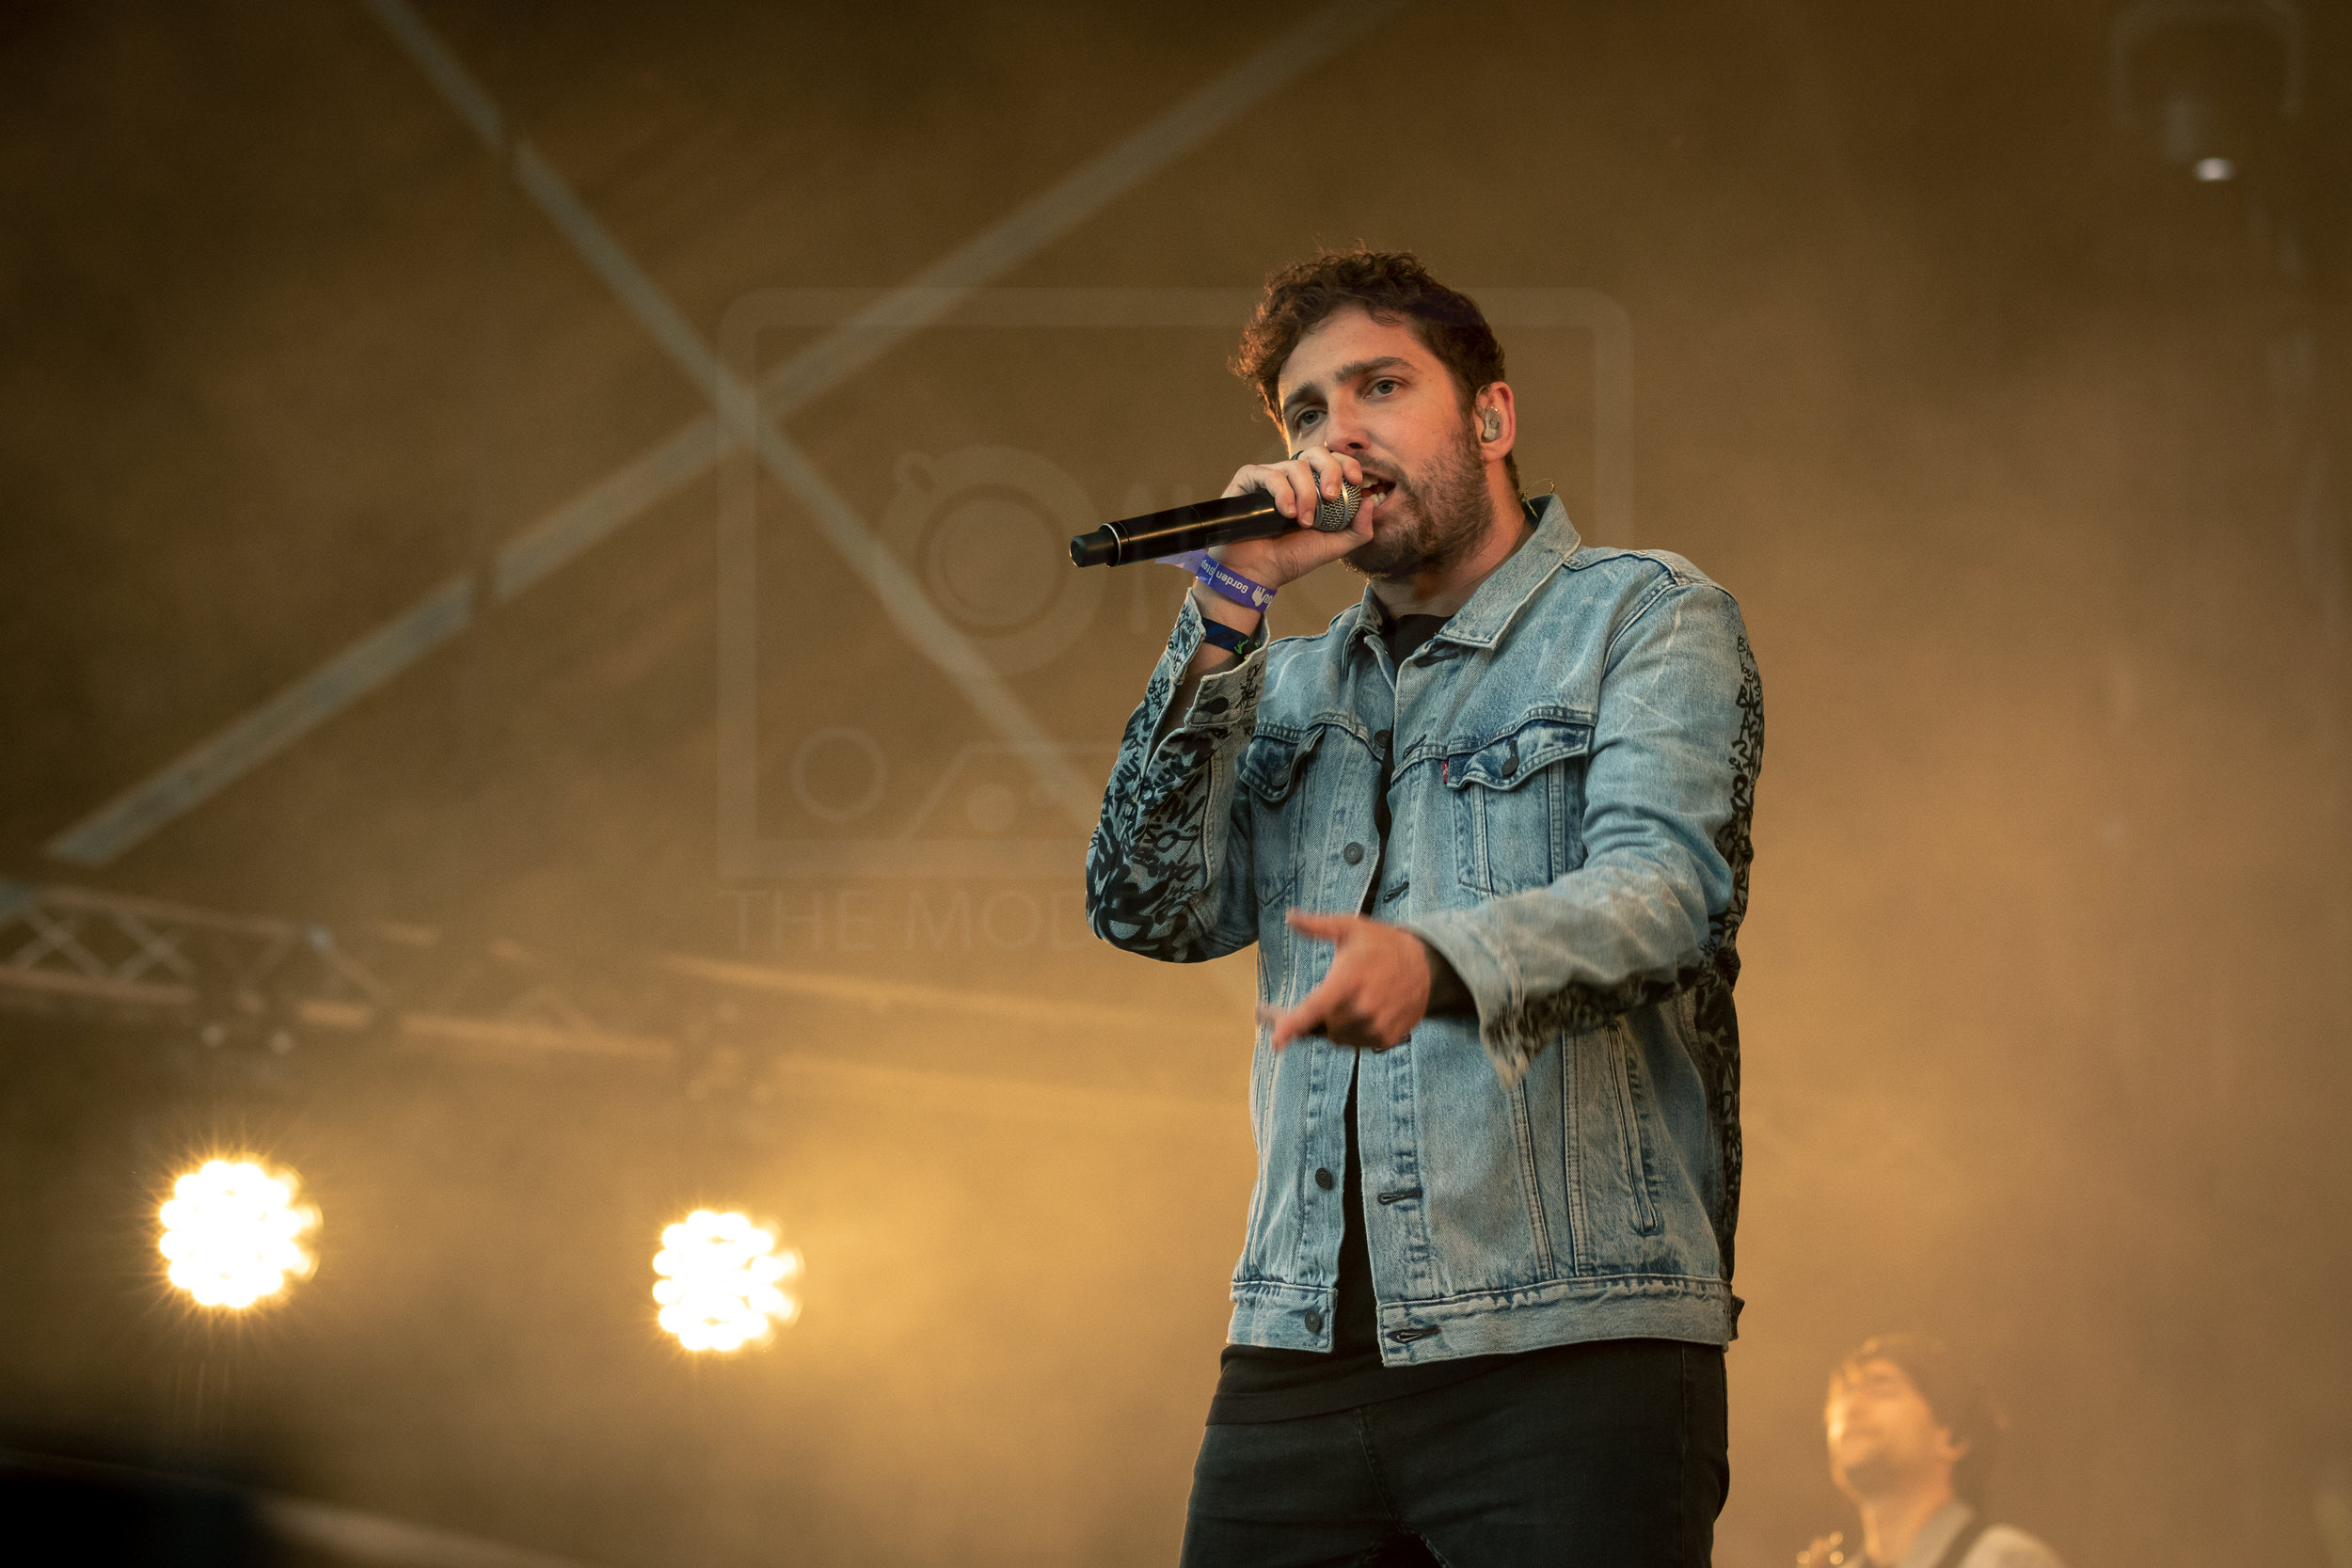 YOU ME AT SIX PERFORMING AT BELLADRUM TARTAN HEART FESTIVAL 2018 - 04.08.2018  PICTURE BY: KENDALL WILSON PHOTOGRAPHY